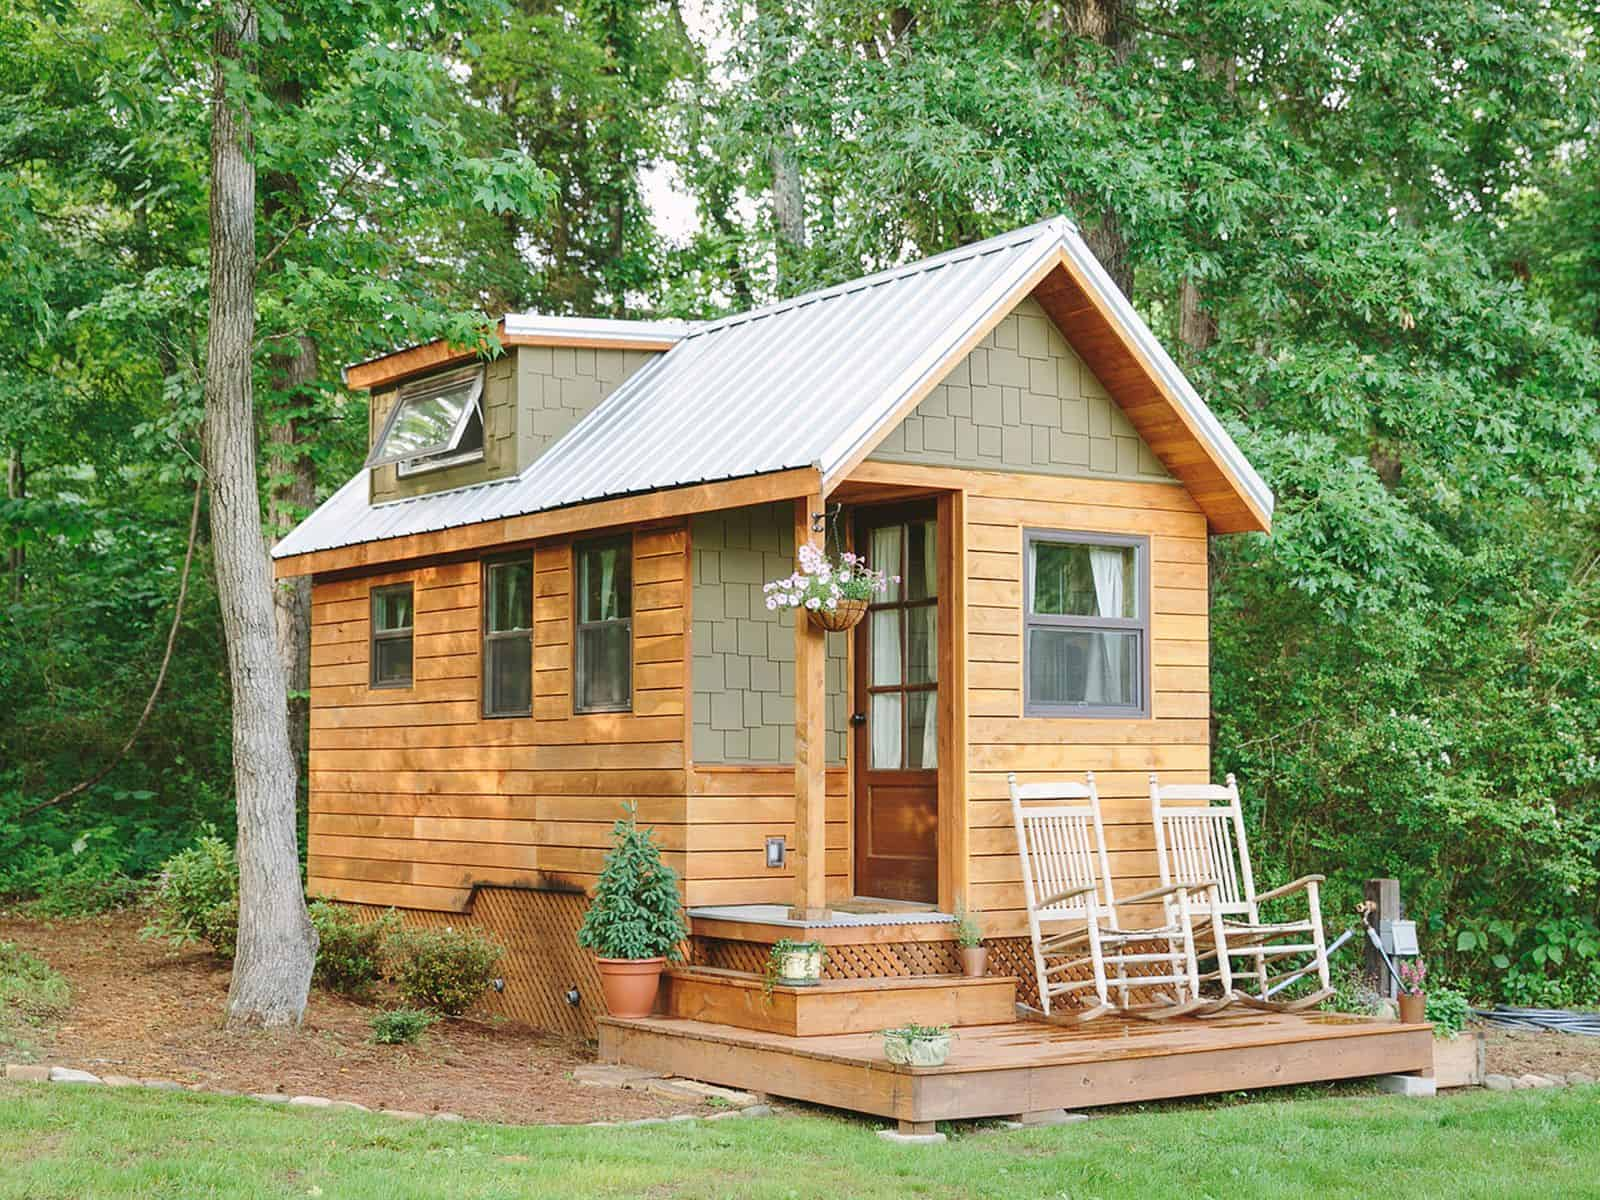 Extremely tiny homes minimalistic living in style for Building a little house